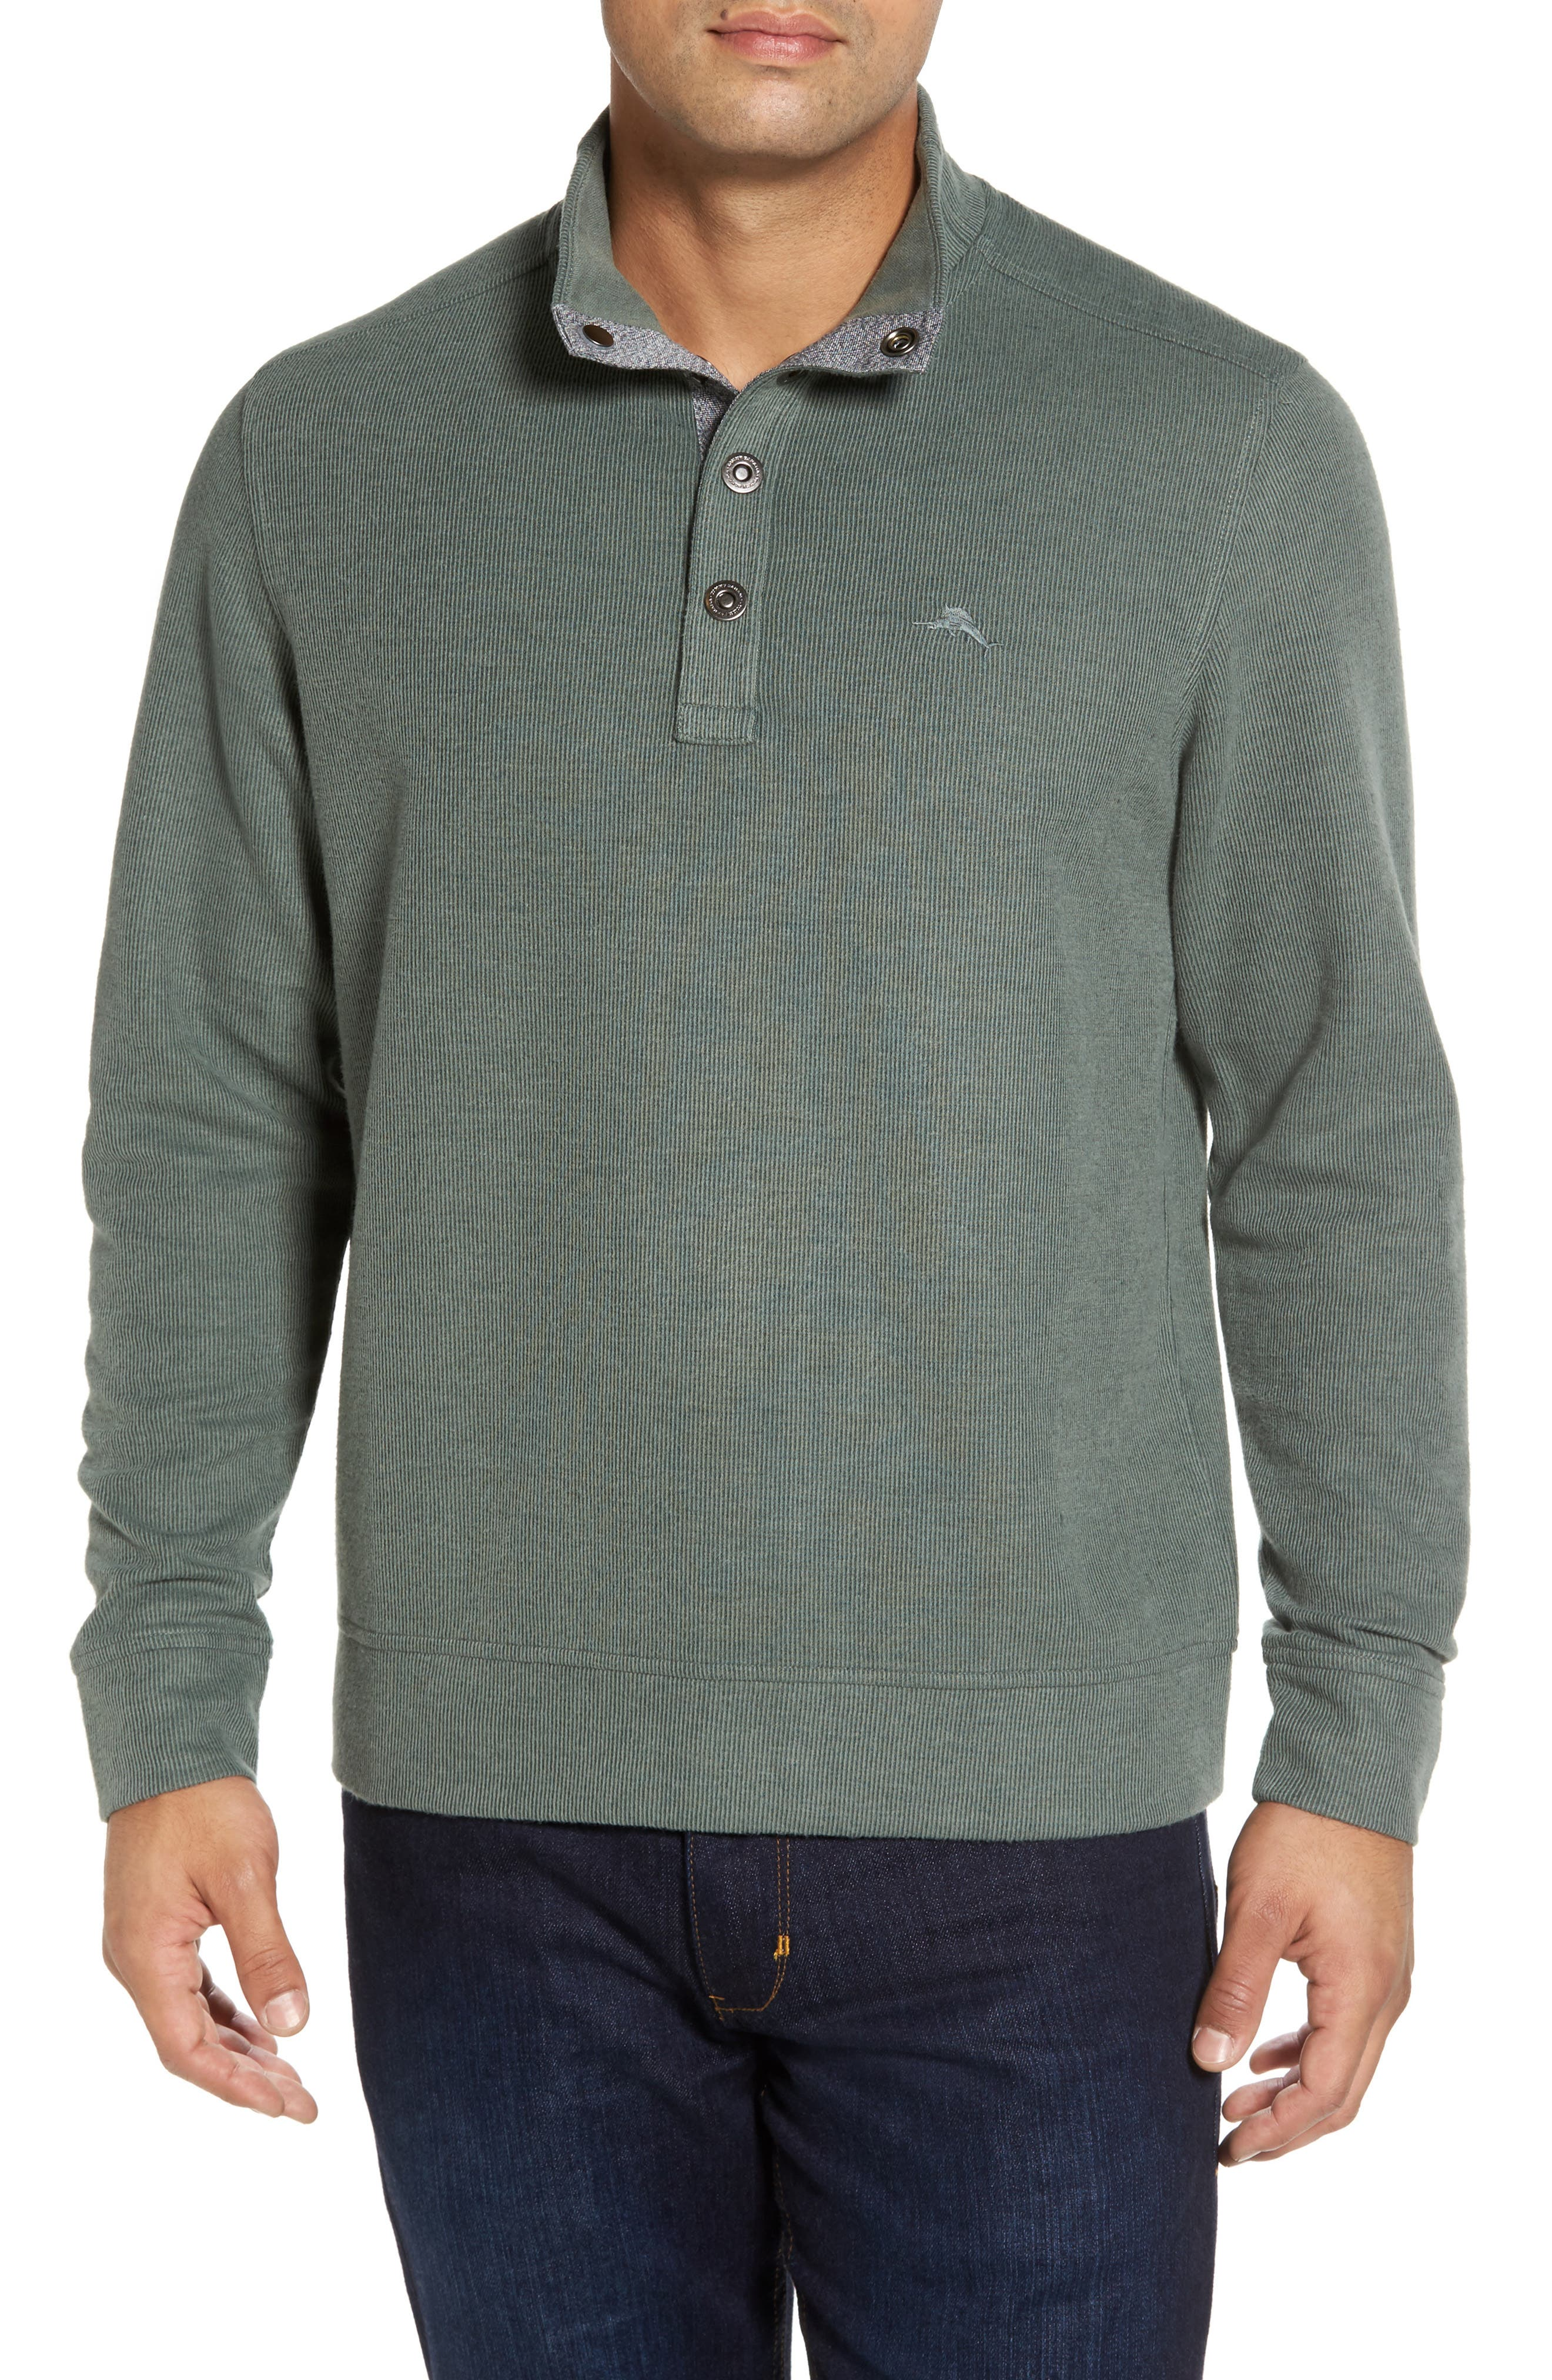 Cold Springs Snap Mock Neck Sweater,                             Main thumbnail 4, color,